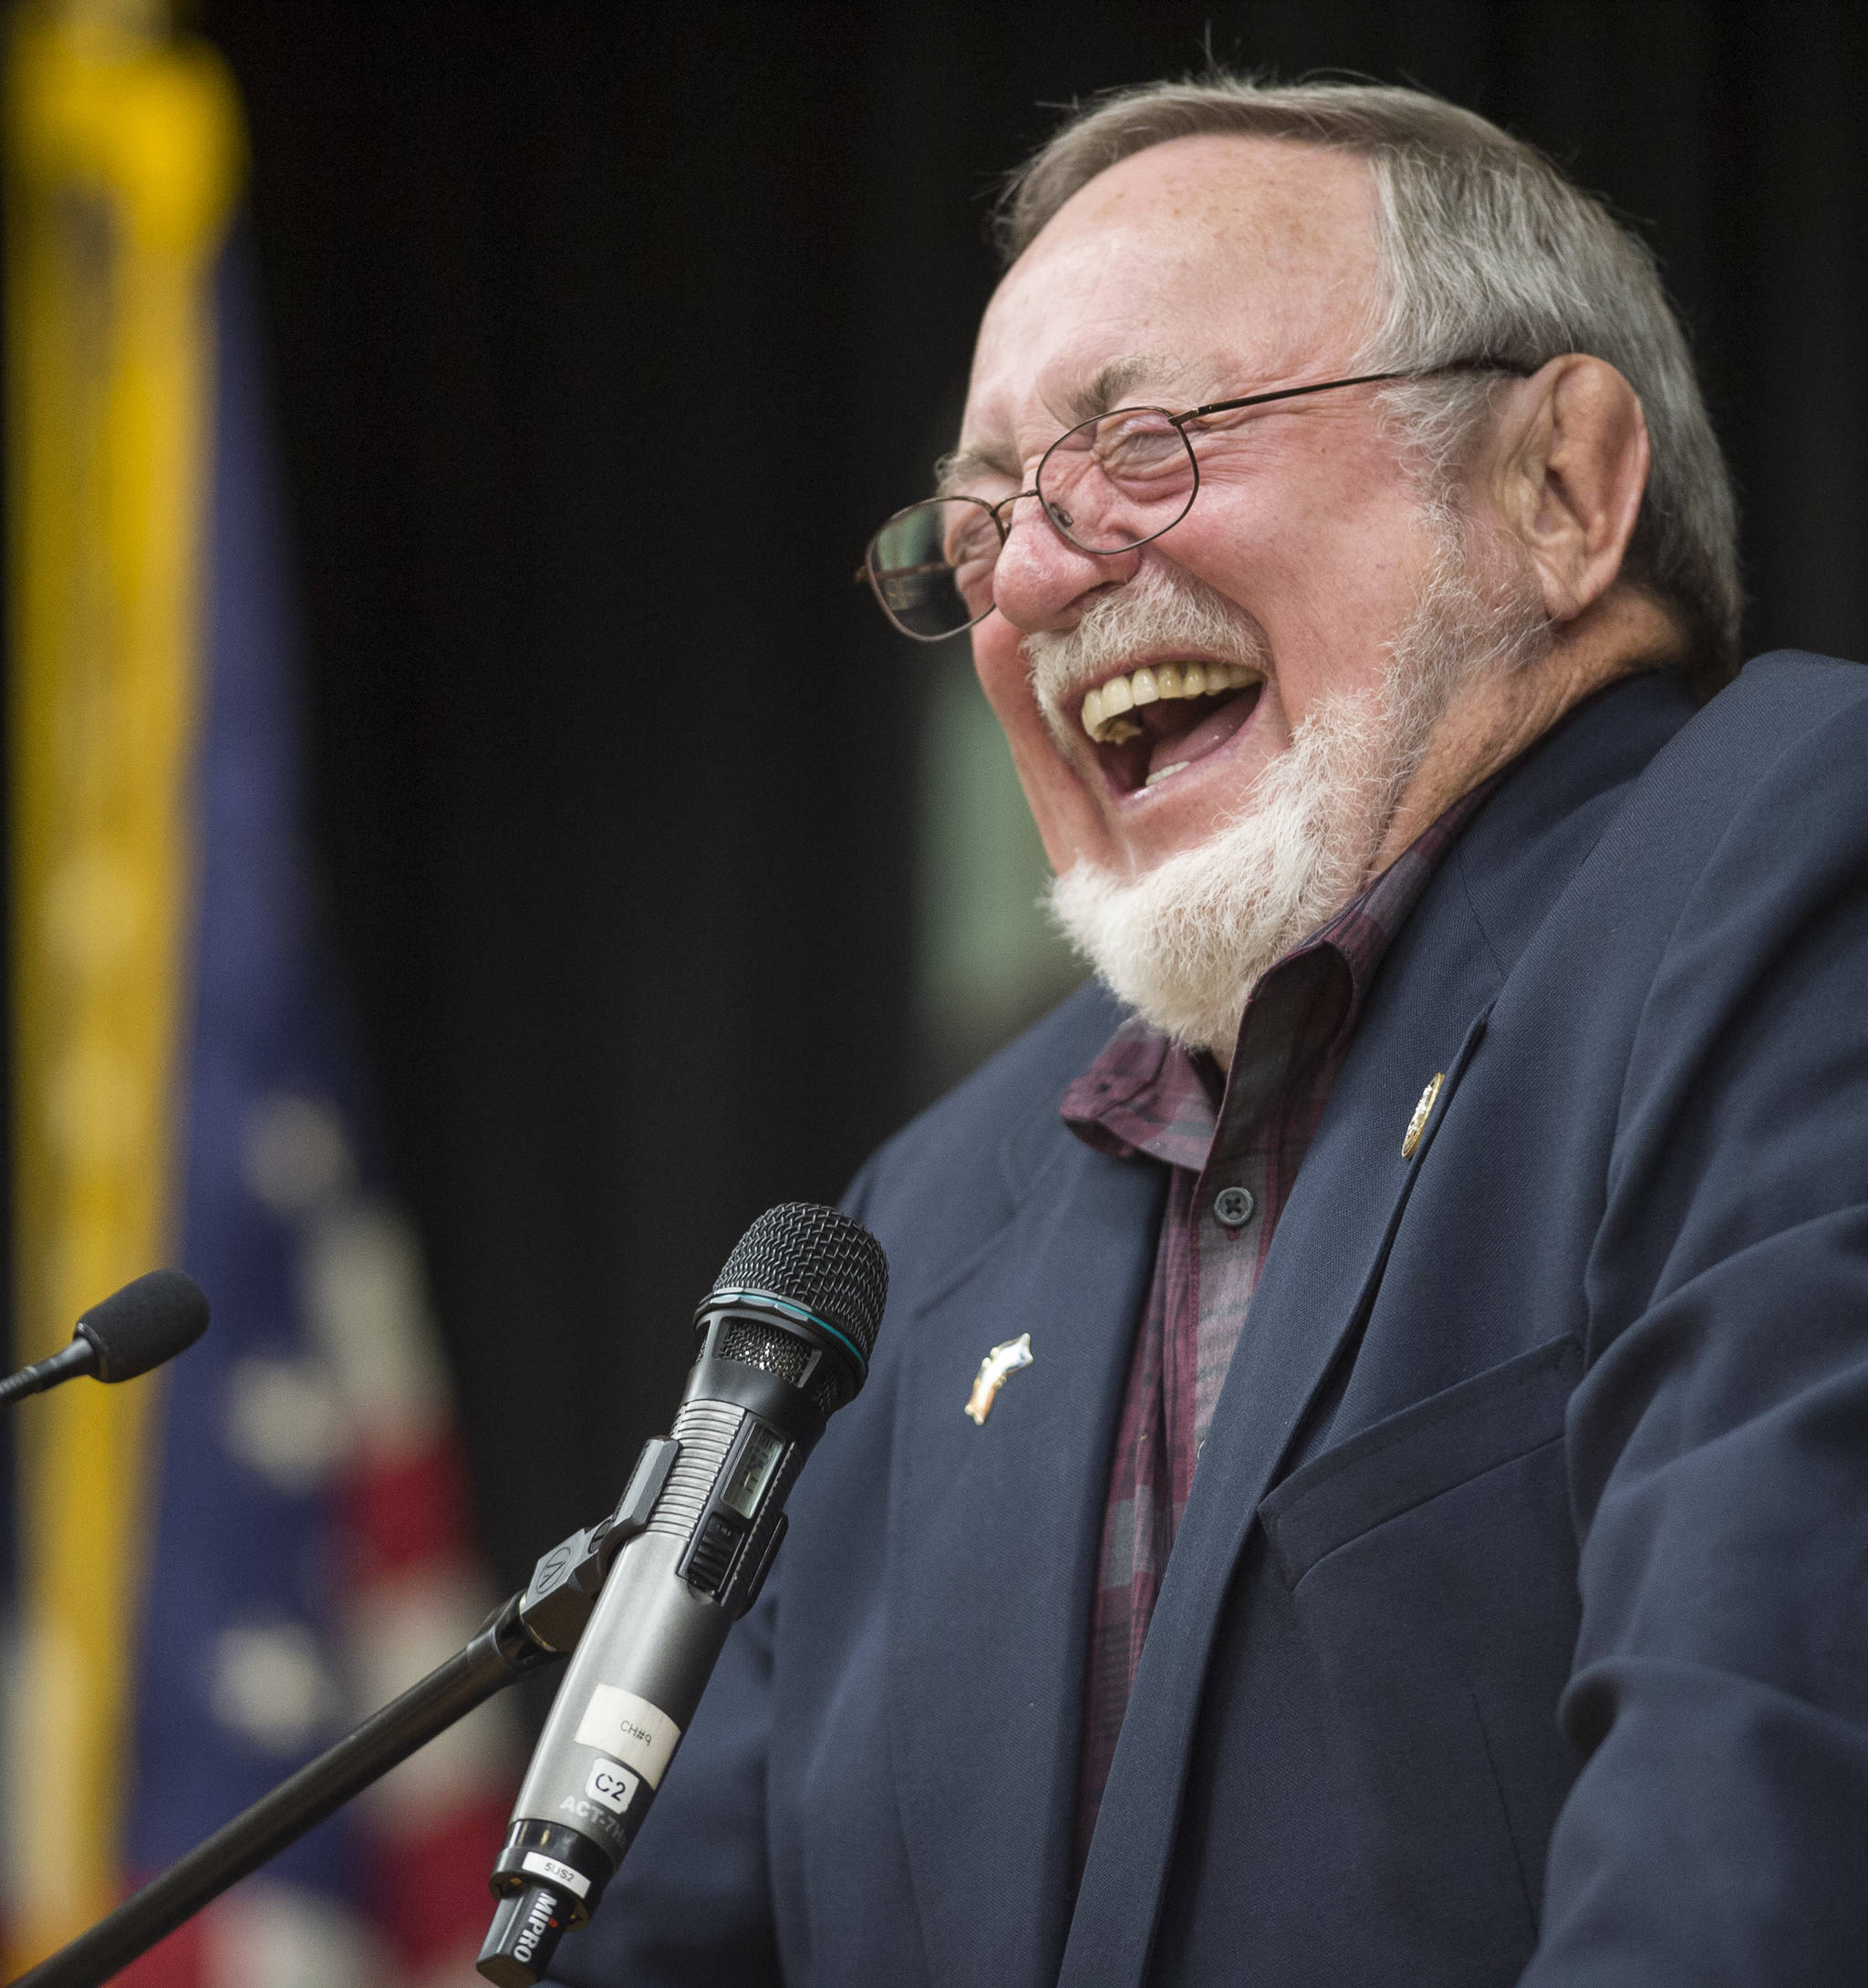 U.S. Rep. Don Young, R-Alaska, laughs while responding to a question at the Native Issues Forum at the Elizabeth Peratrovich Hall on Wednesday, August 1, 2018. (Michael Penn | Juneau Empire)